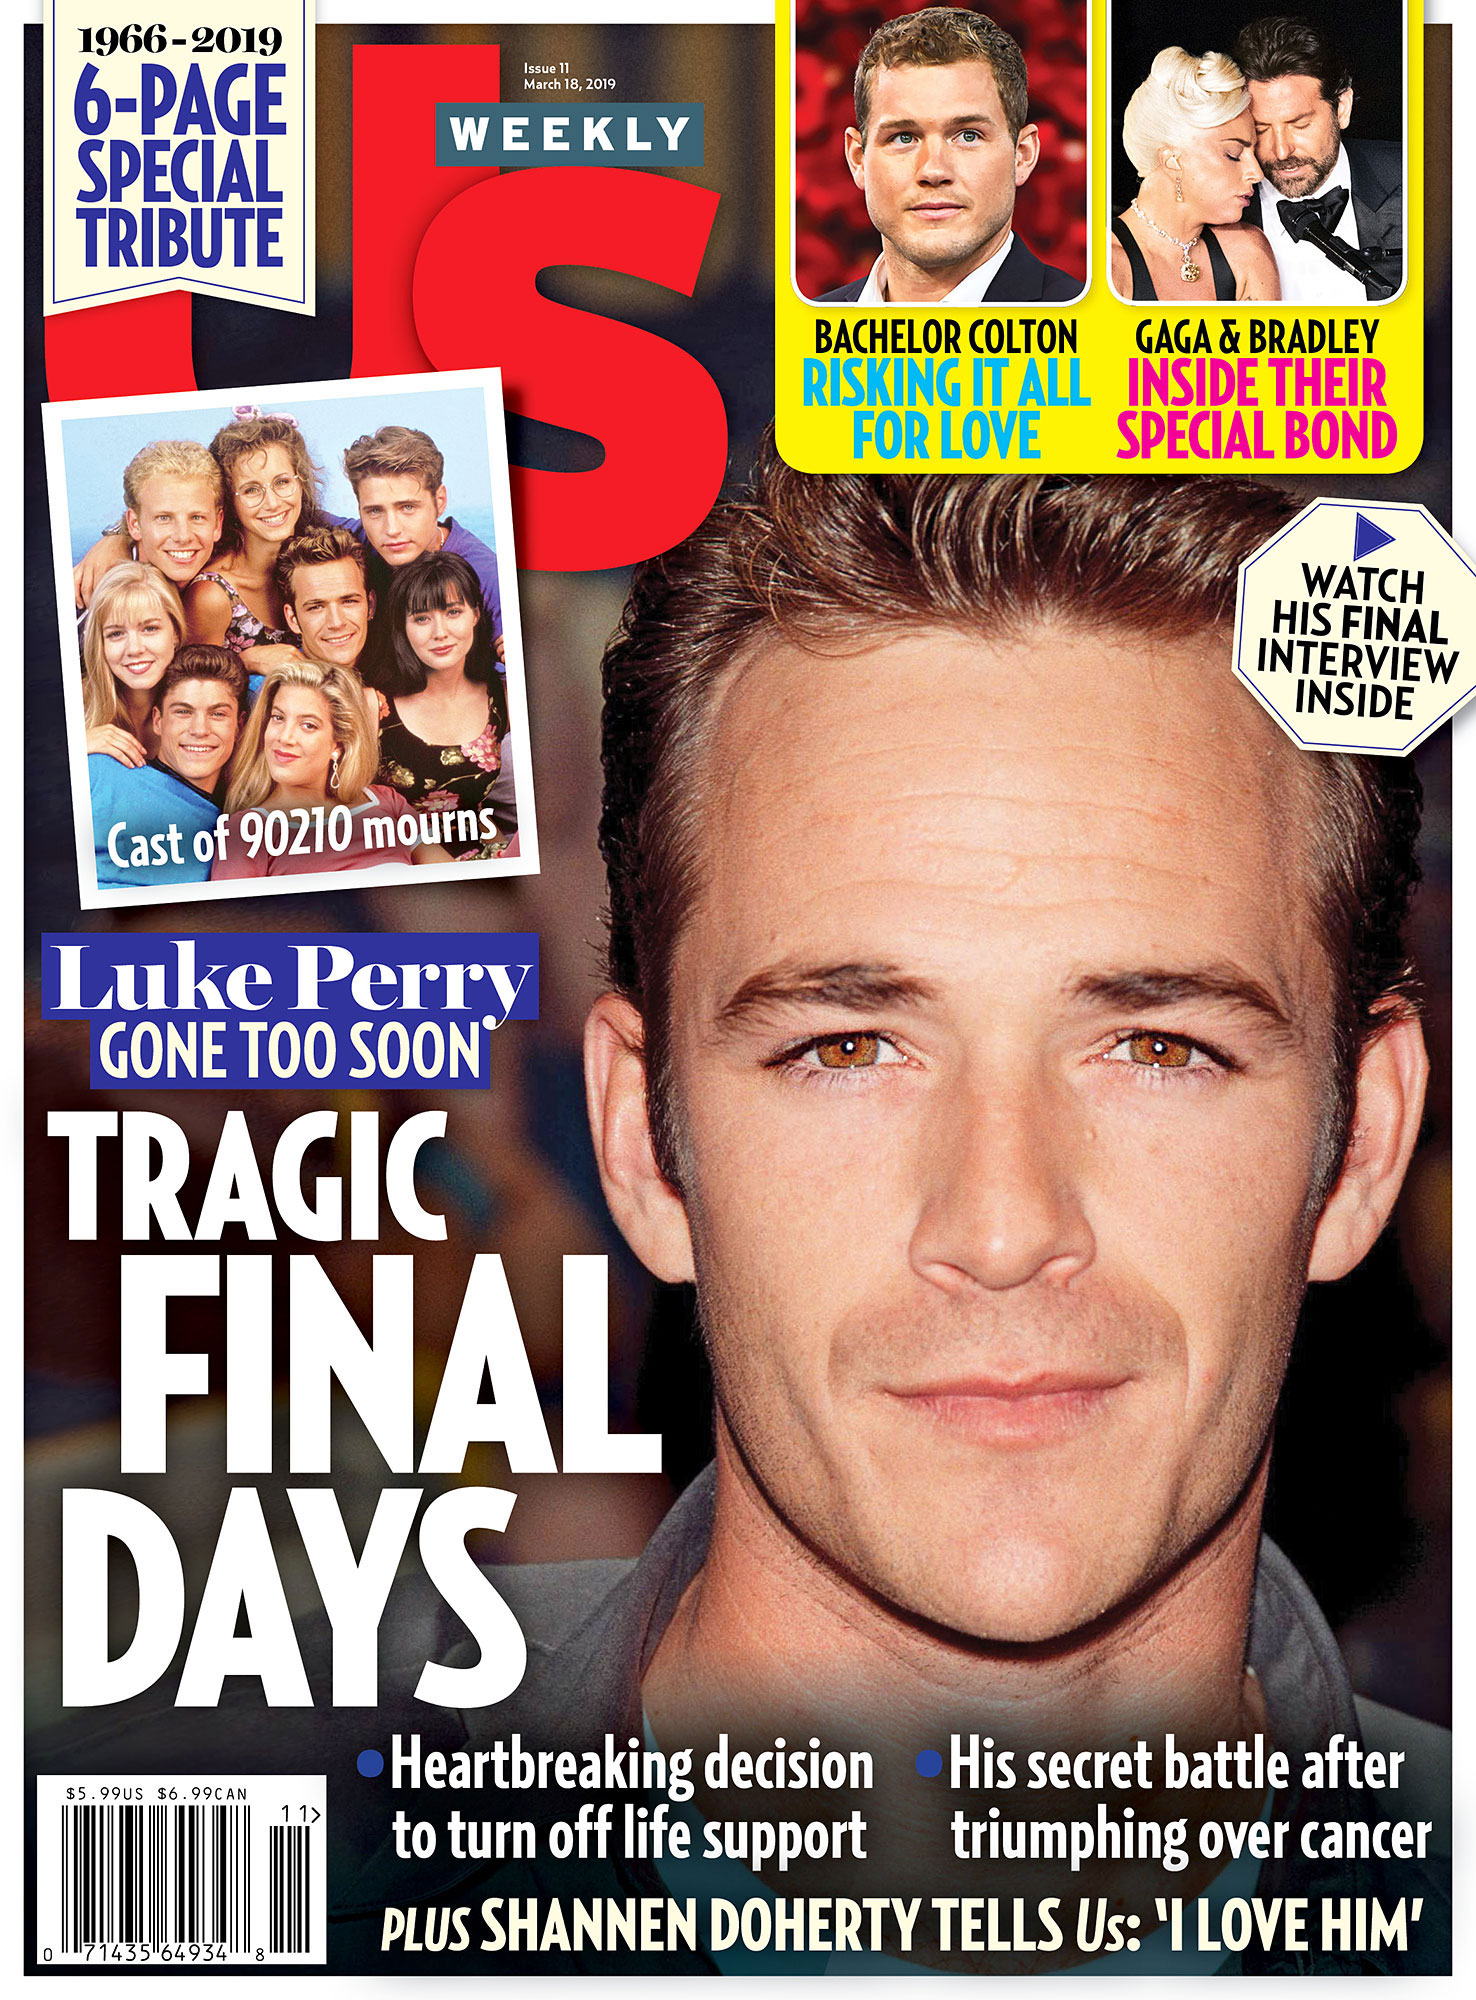 Us Weekly Cover Luke Perry Dead Bradley Cooper, Lady Gaga 'Really Got Into' Their A Star Is Born Roles: They Have 'Insane Chemistry' - UW1119 Us Weekly Cover Luke Perry Dead